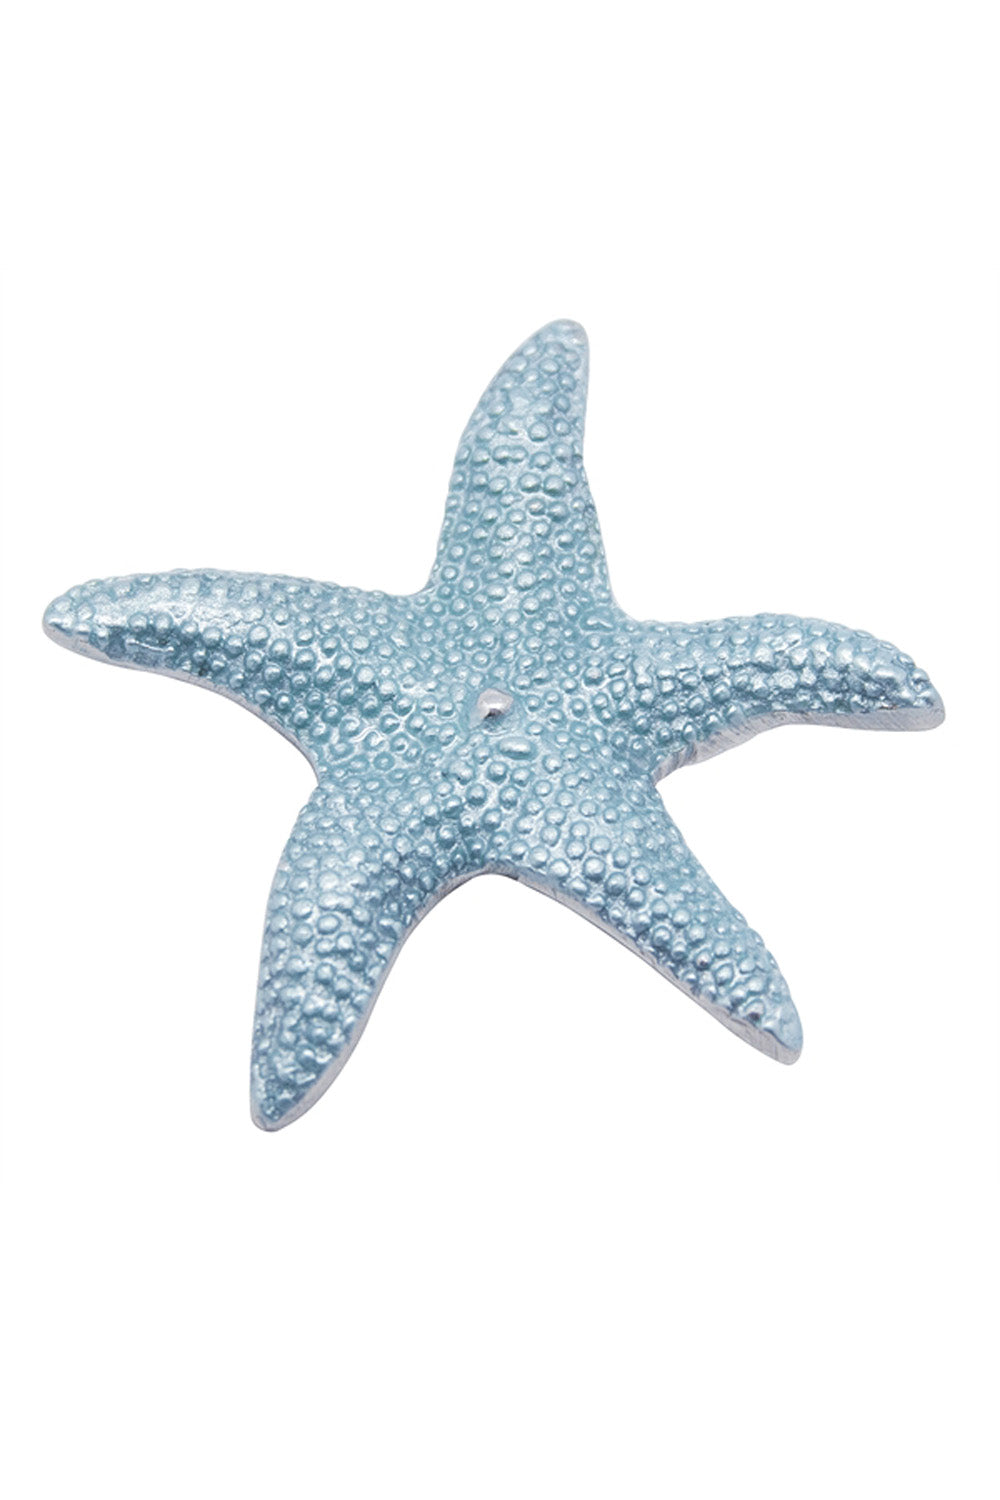 Mariposa Napkin Weight - Sea Blue Starfish